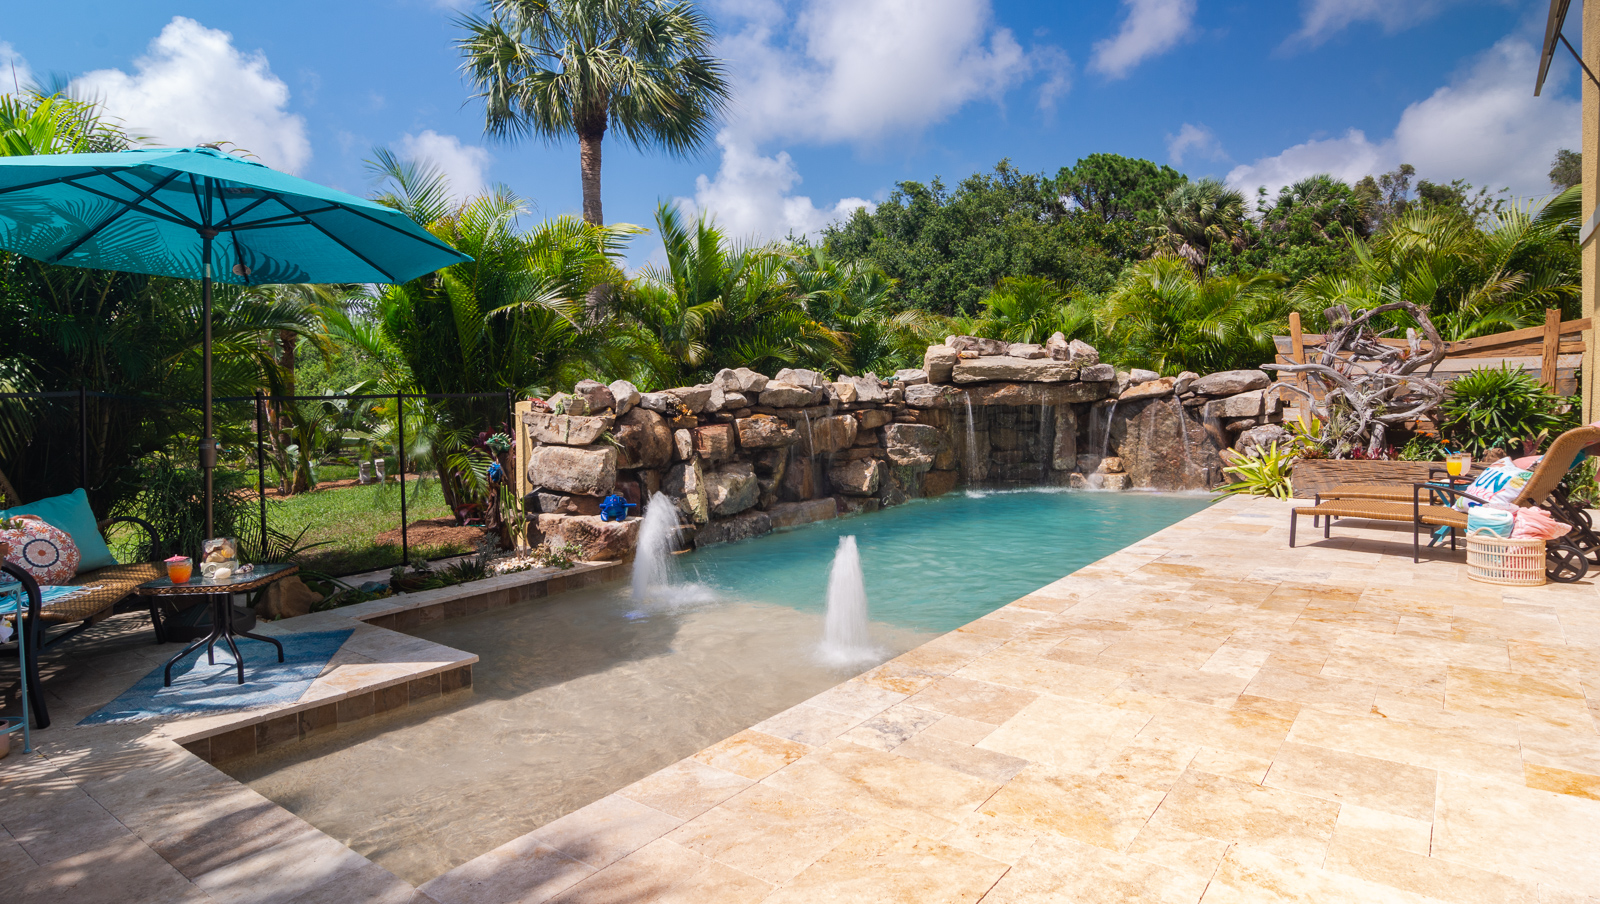 Insane Pools TV Episode Small Yard, Big Dreams on Dream Backyard With Pool id=26273